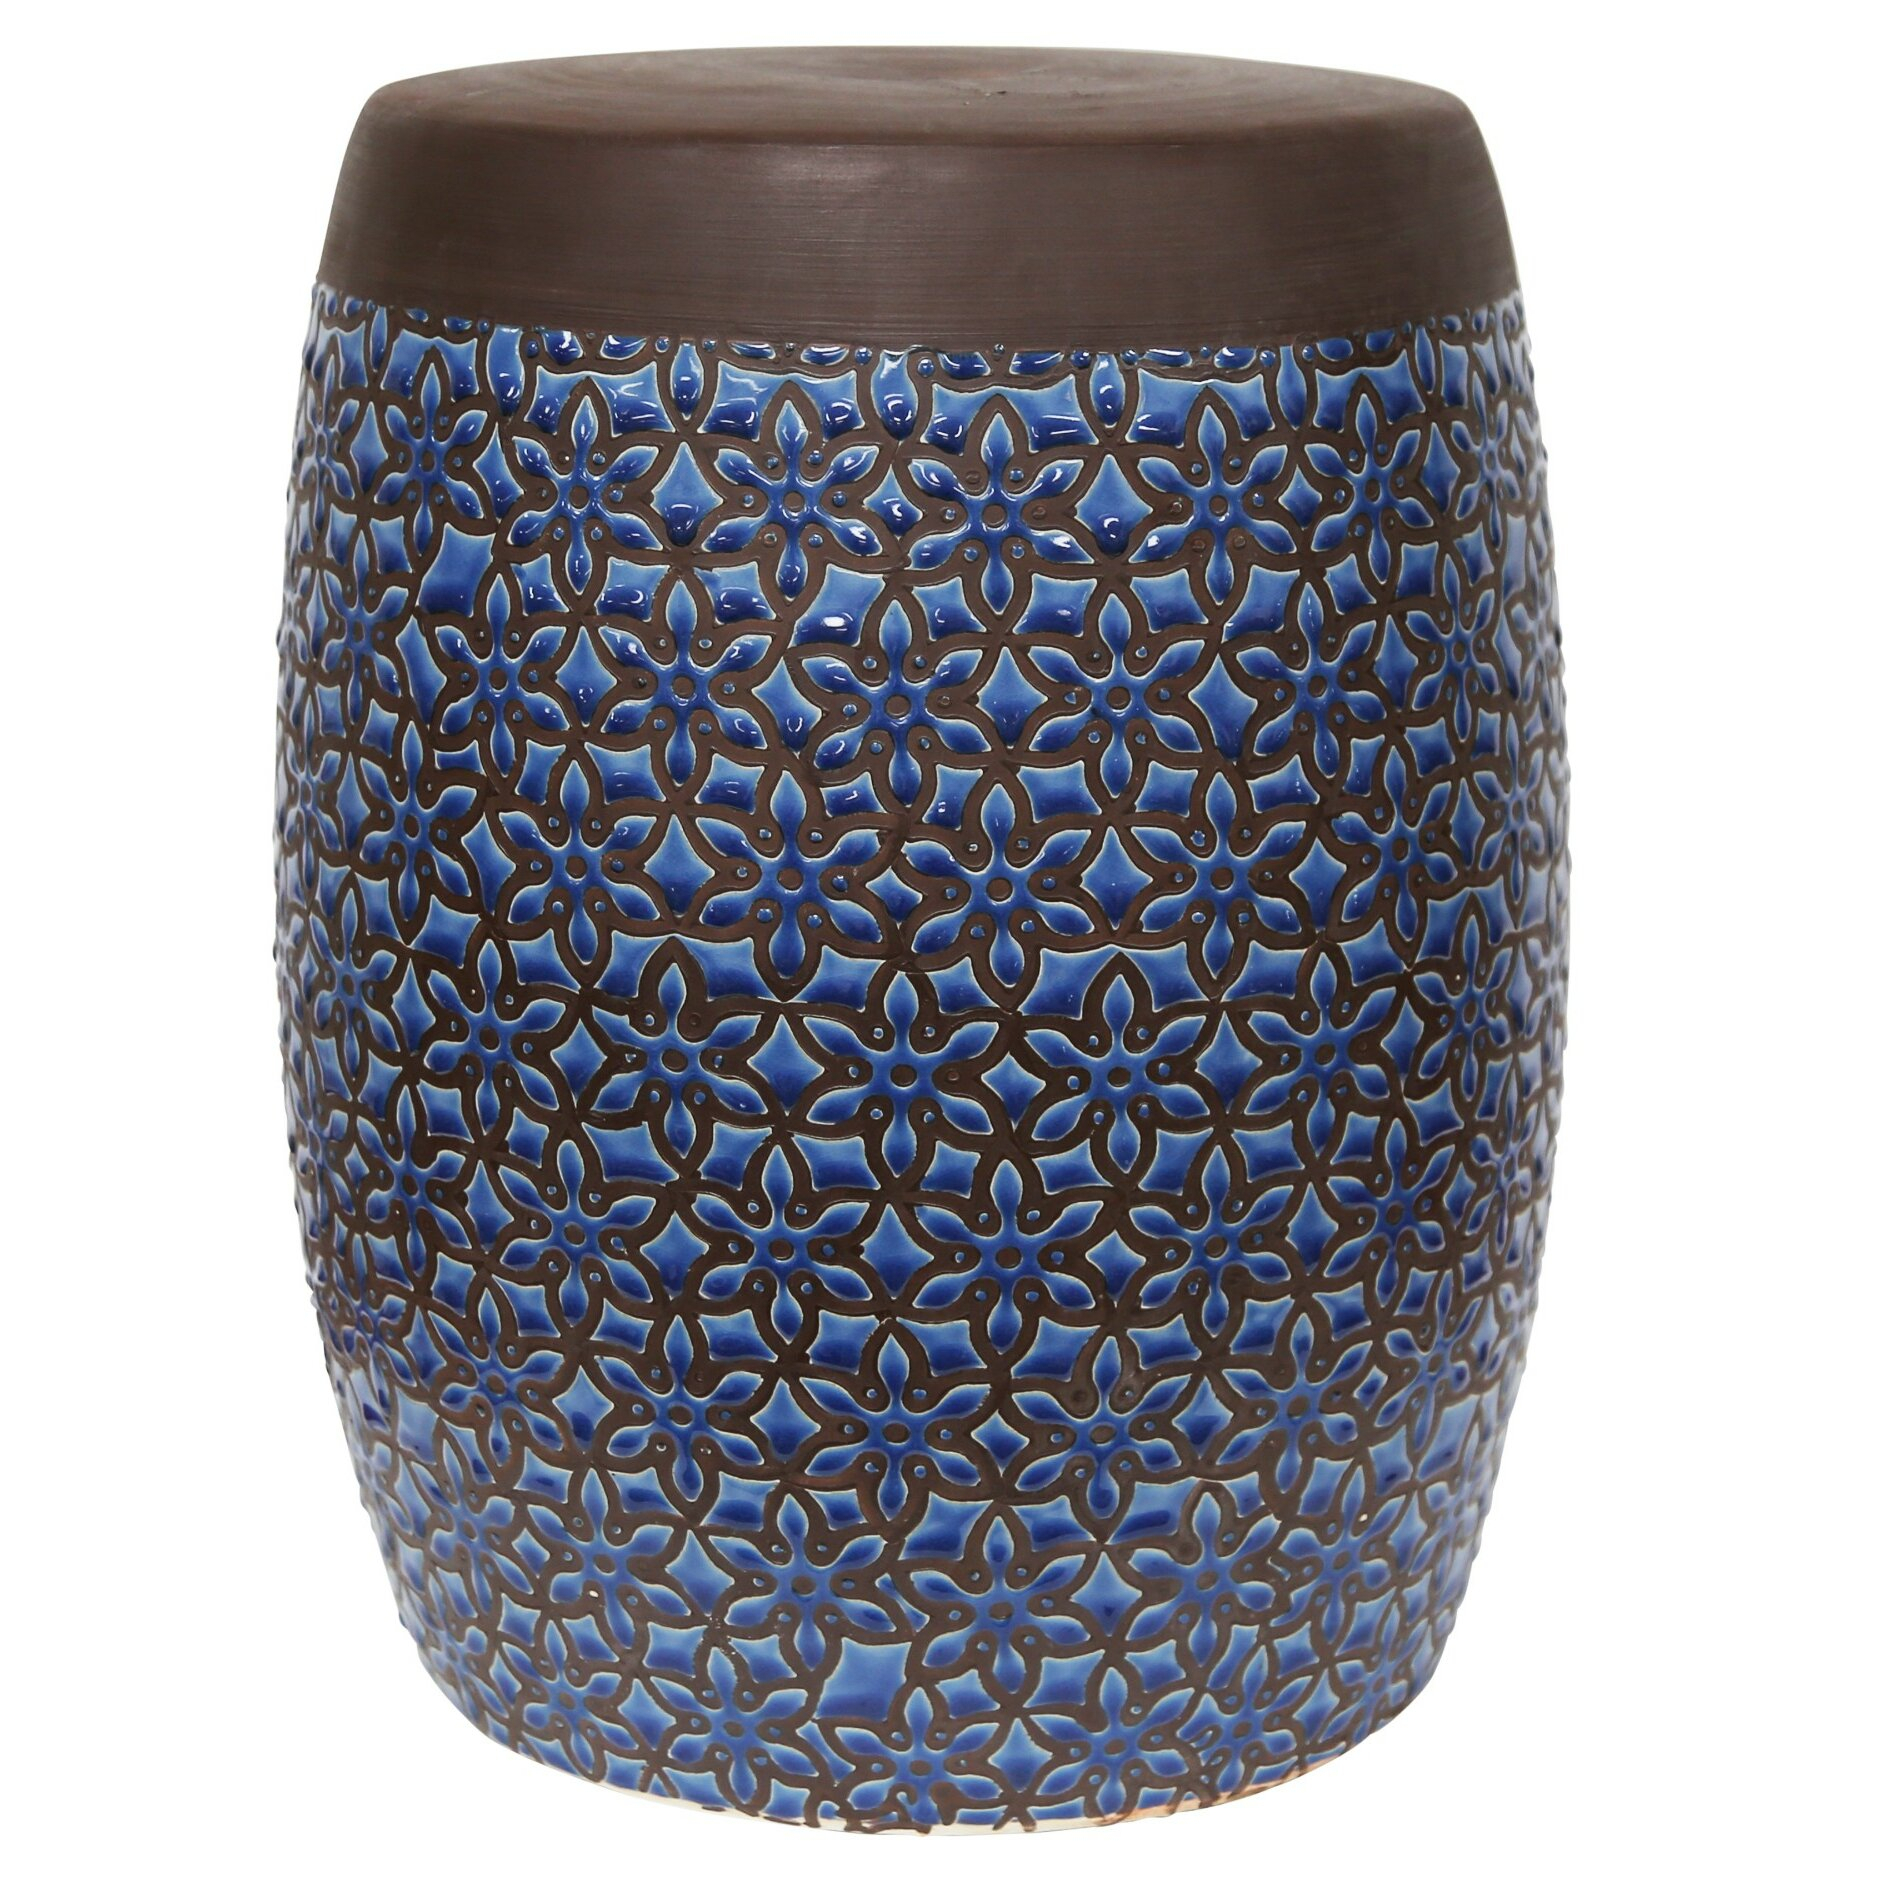 Zabel Ceramic Garden Stool Within Bracey Garden Stools (View 7 of 25)